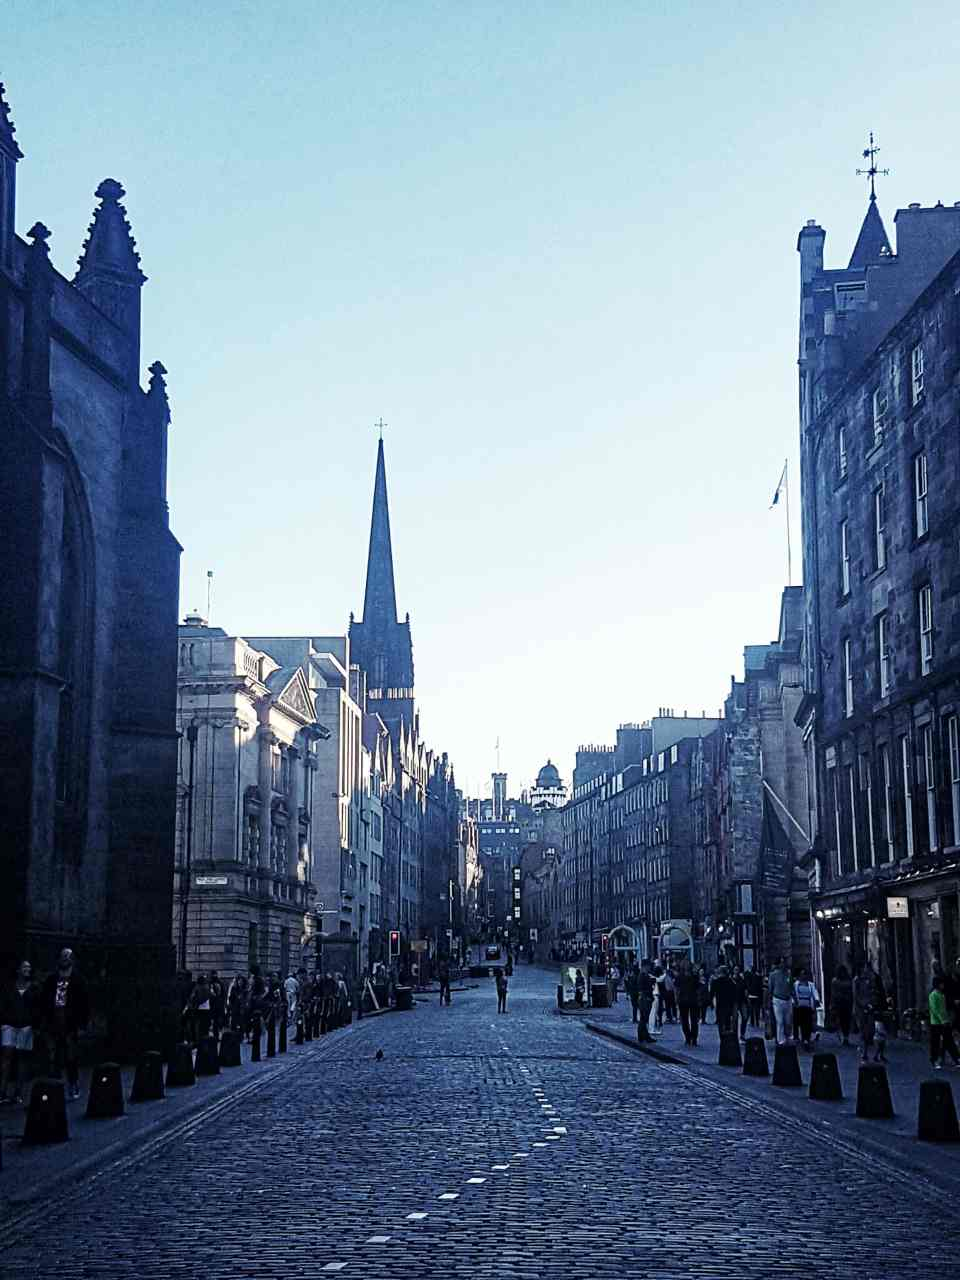 Edinburgh_Royal Mile-01.jpeg